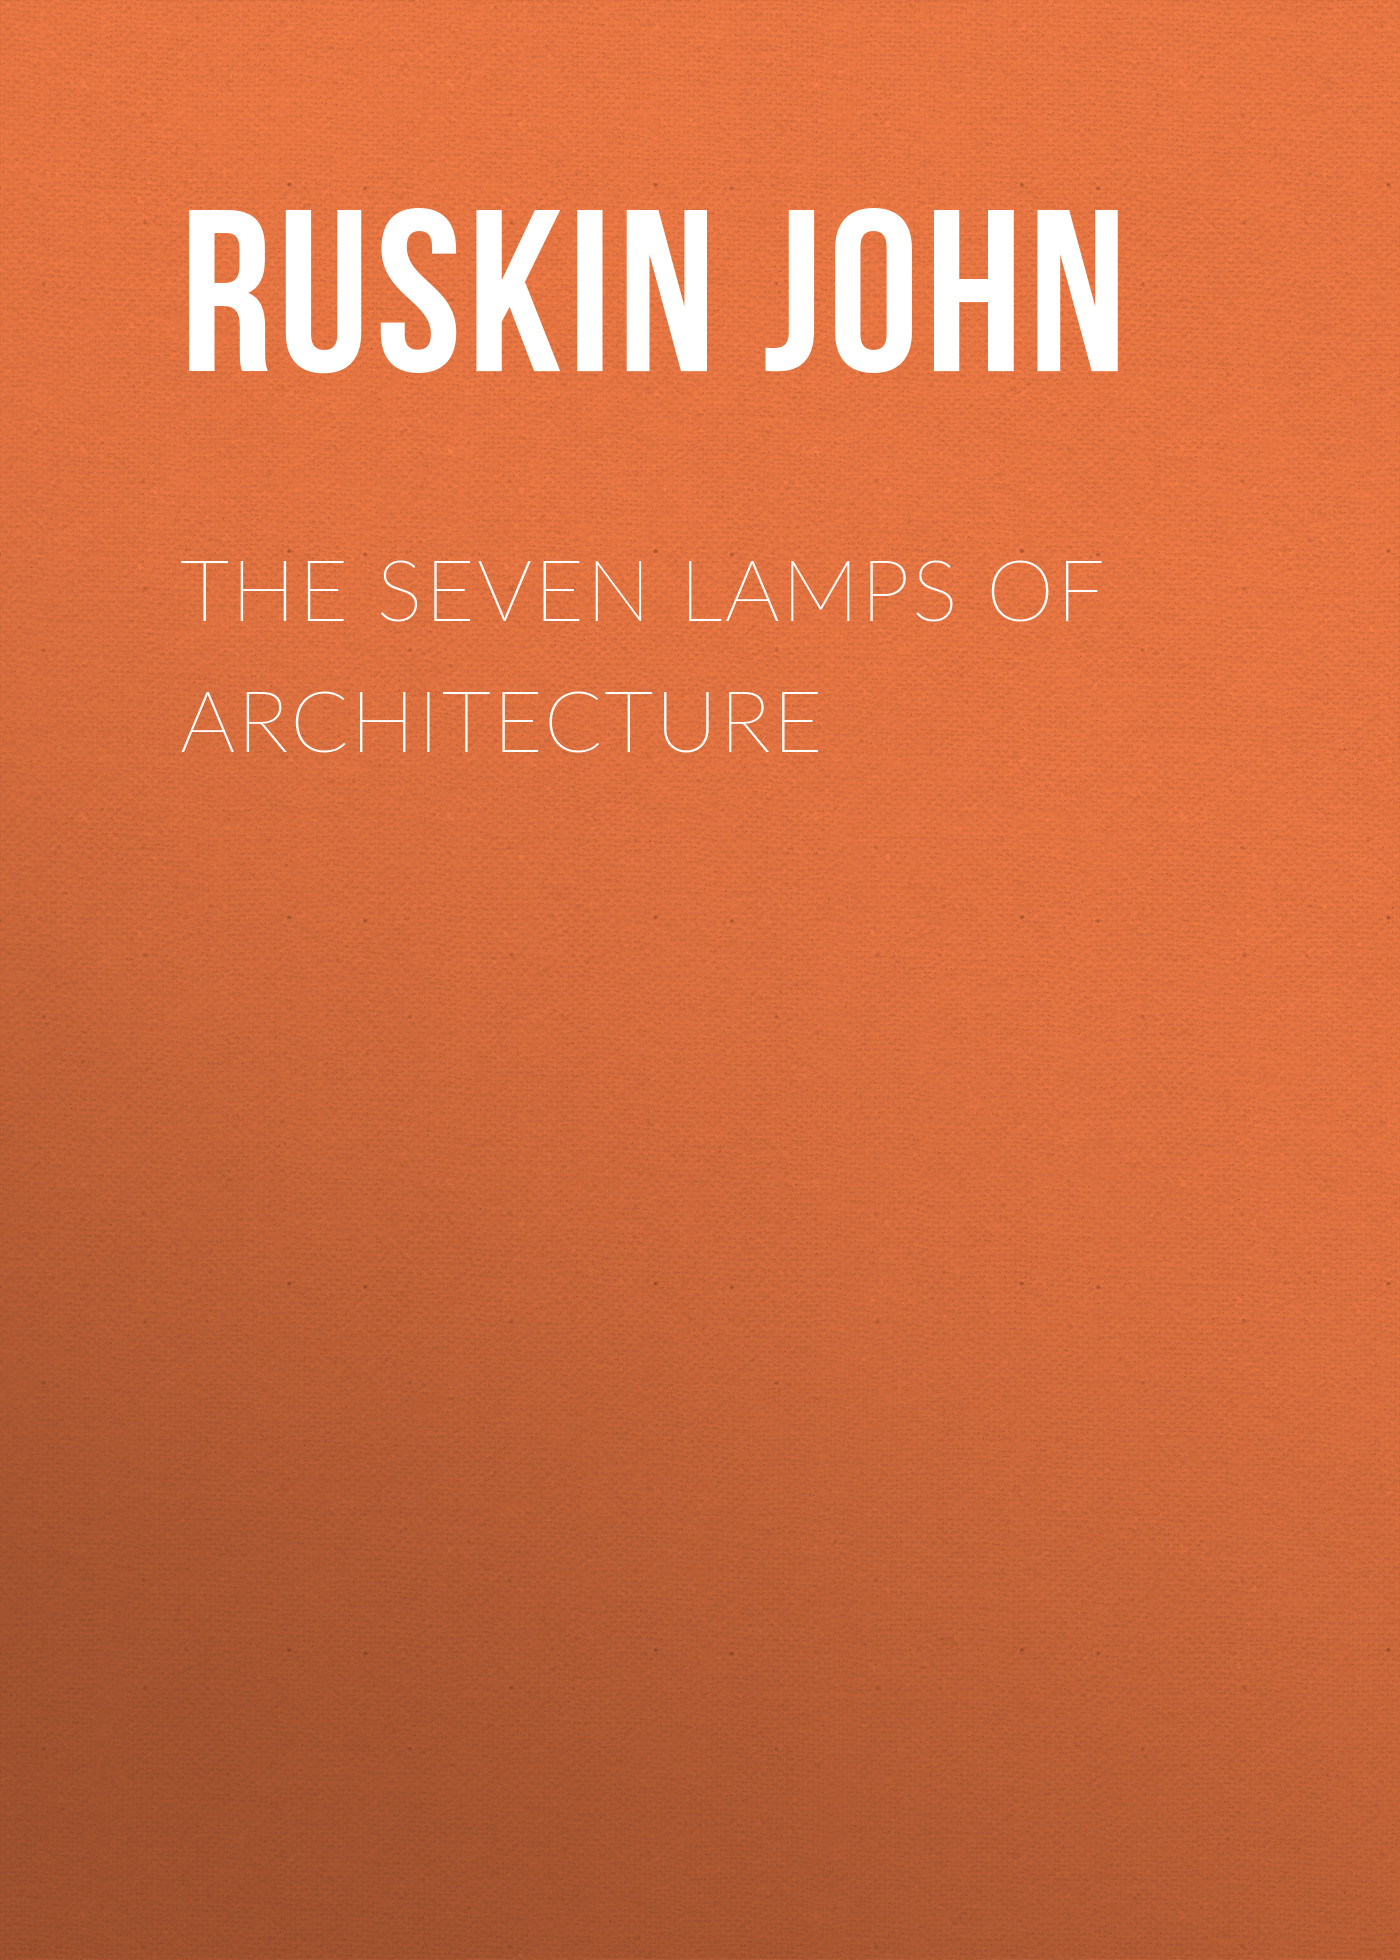 Ruskin John The Seven Lamps of Architecture john ruskin the thoughts of john ruskin